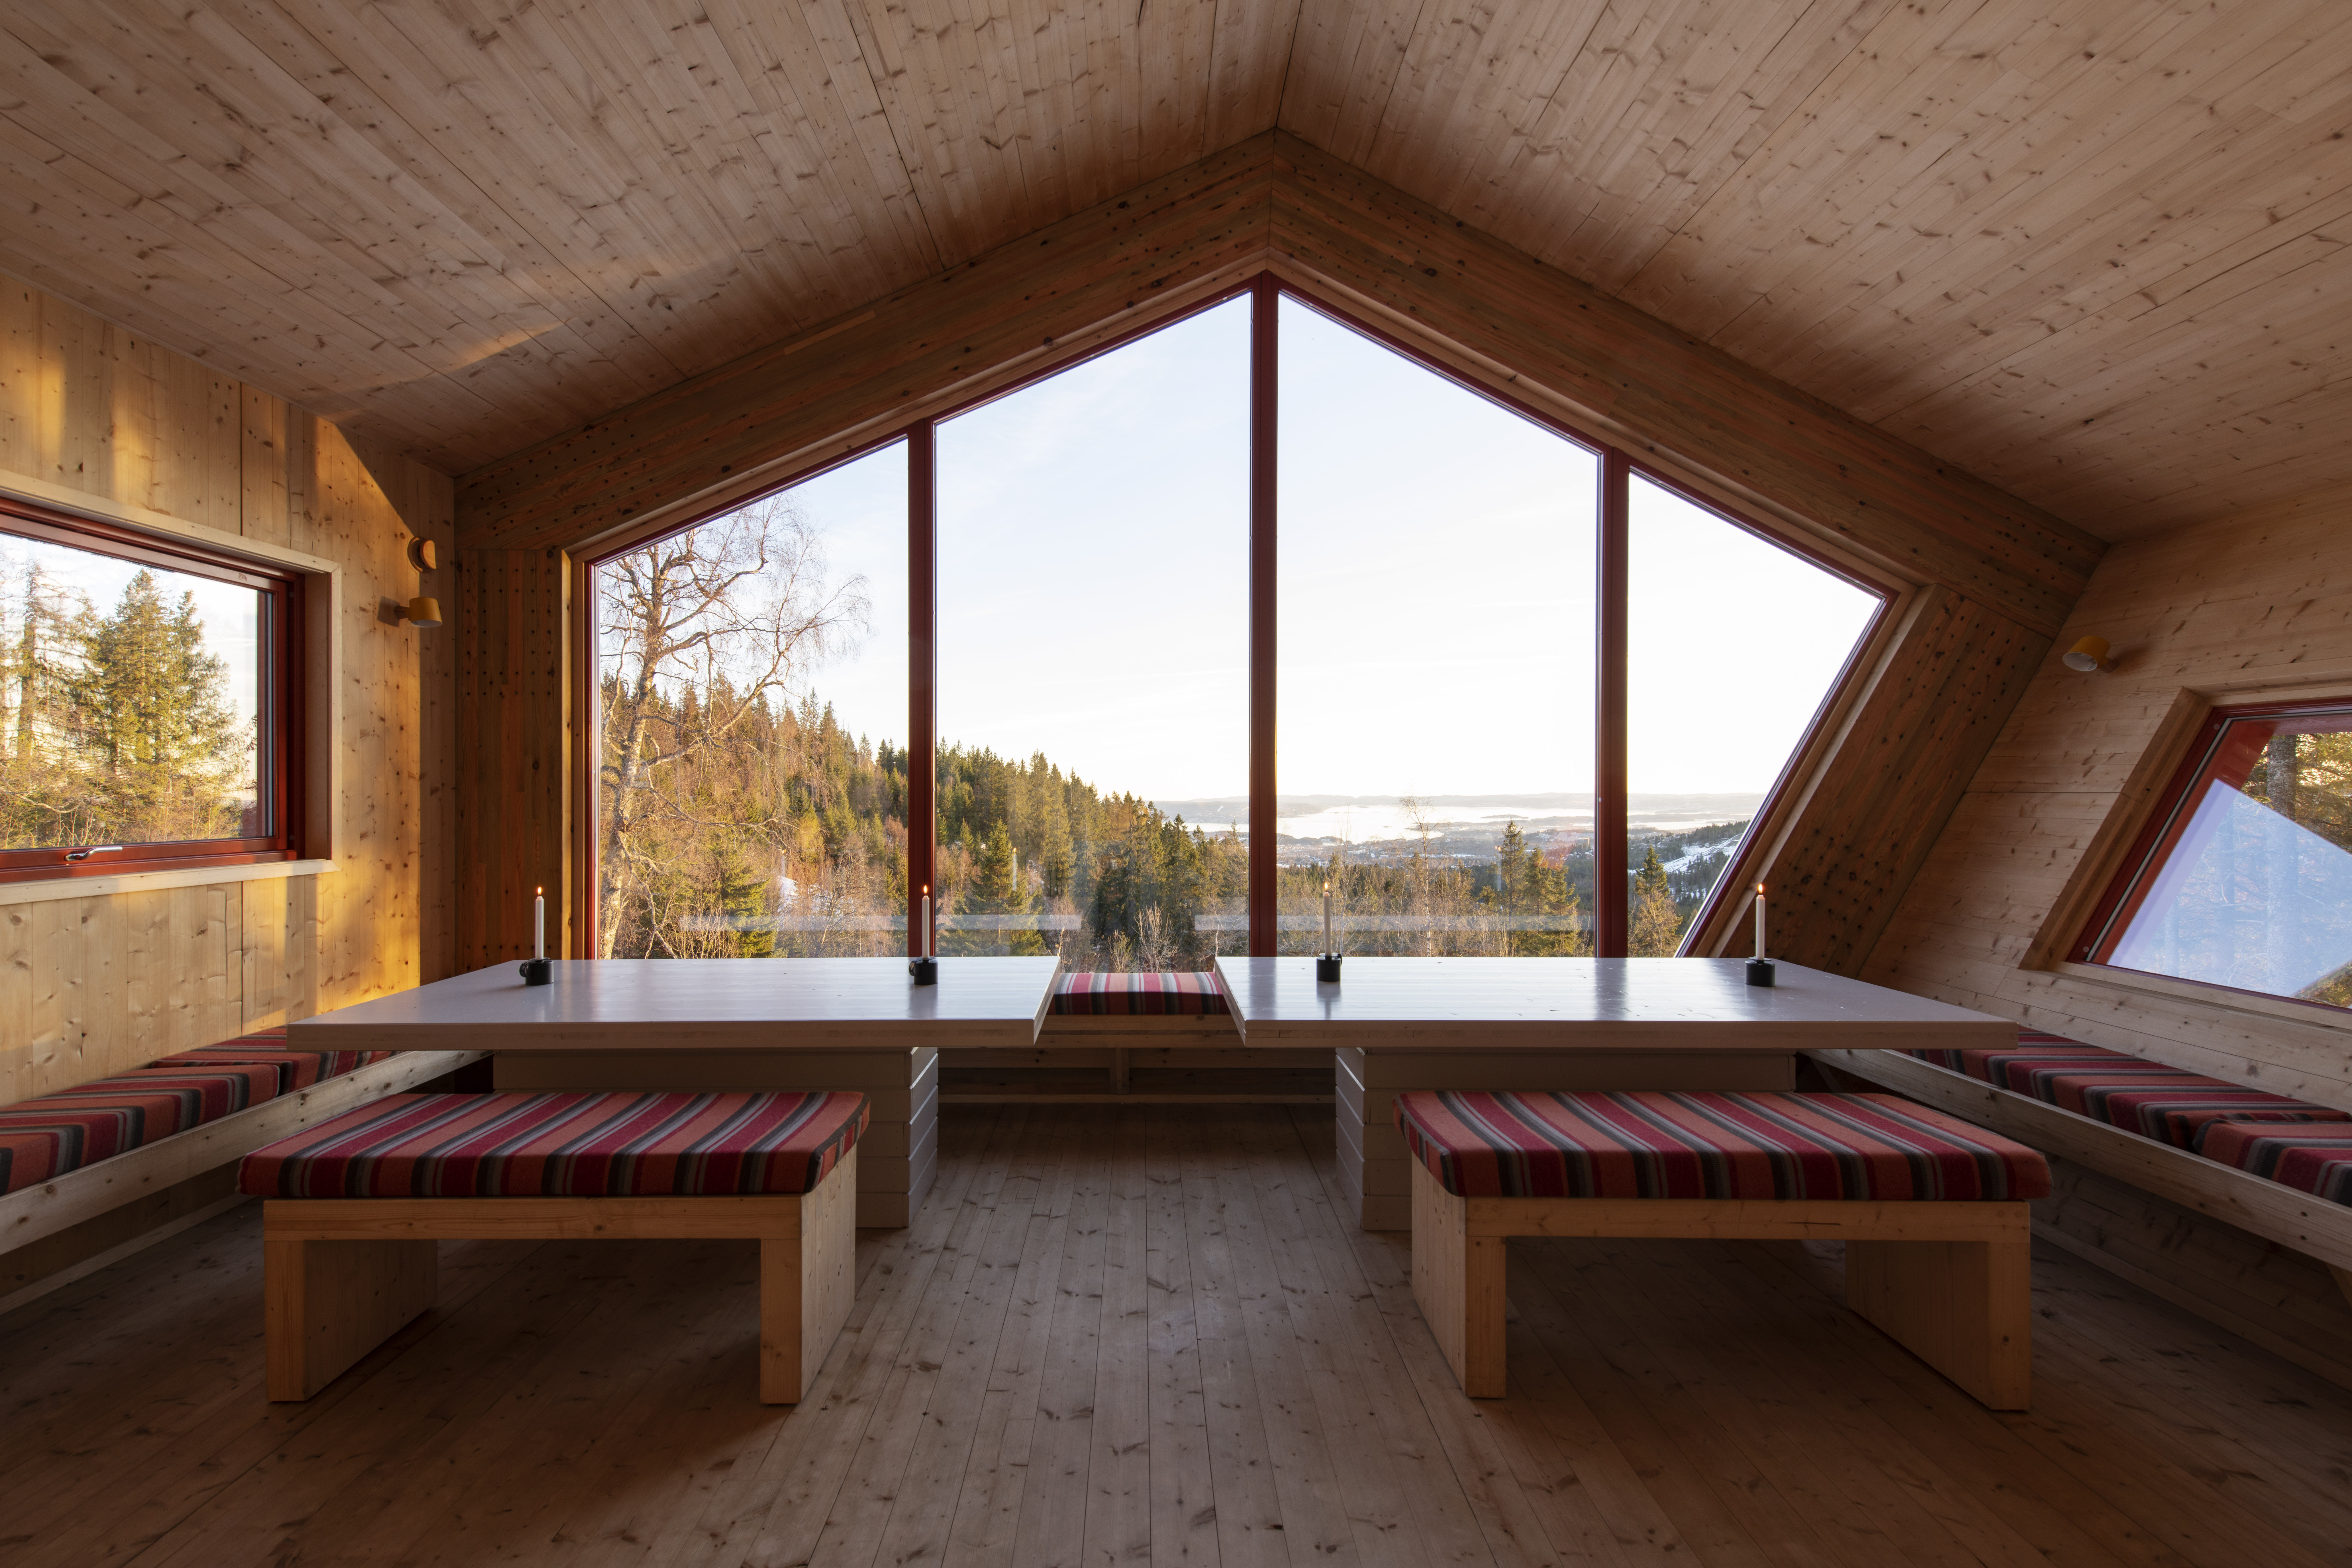 End your hike in style at this gorgeous pentagonal cabin